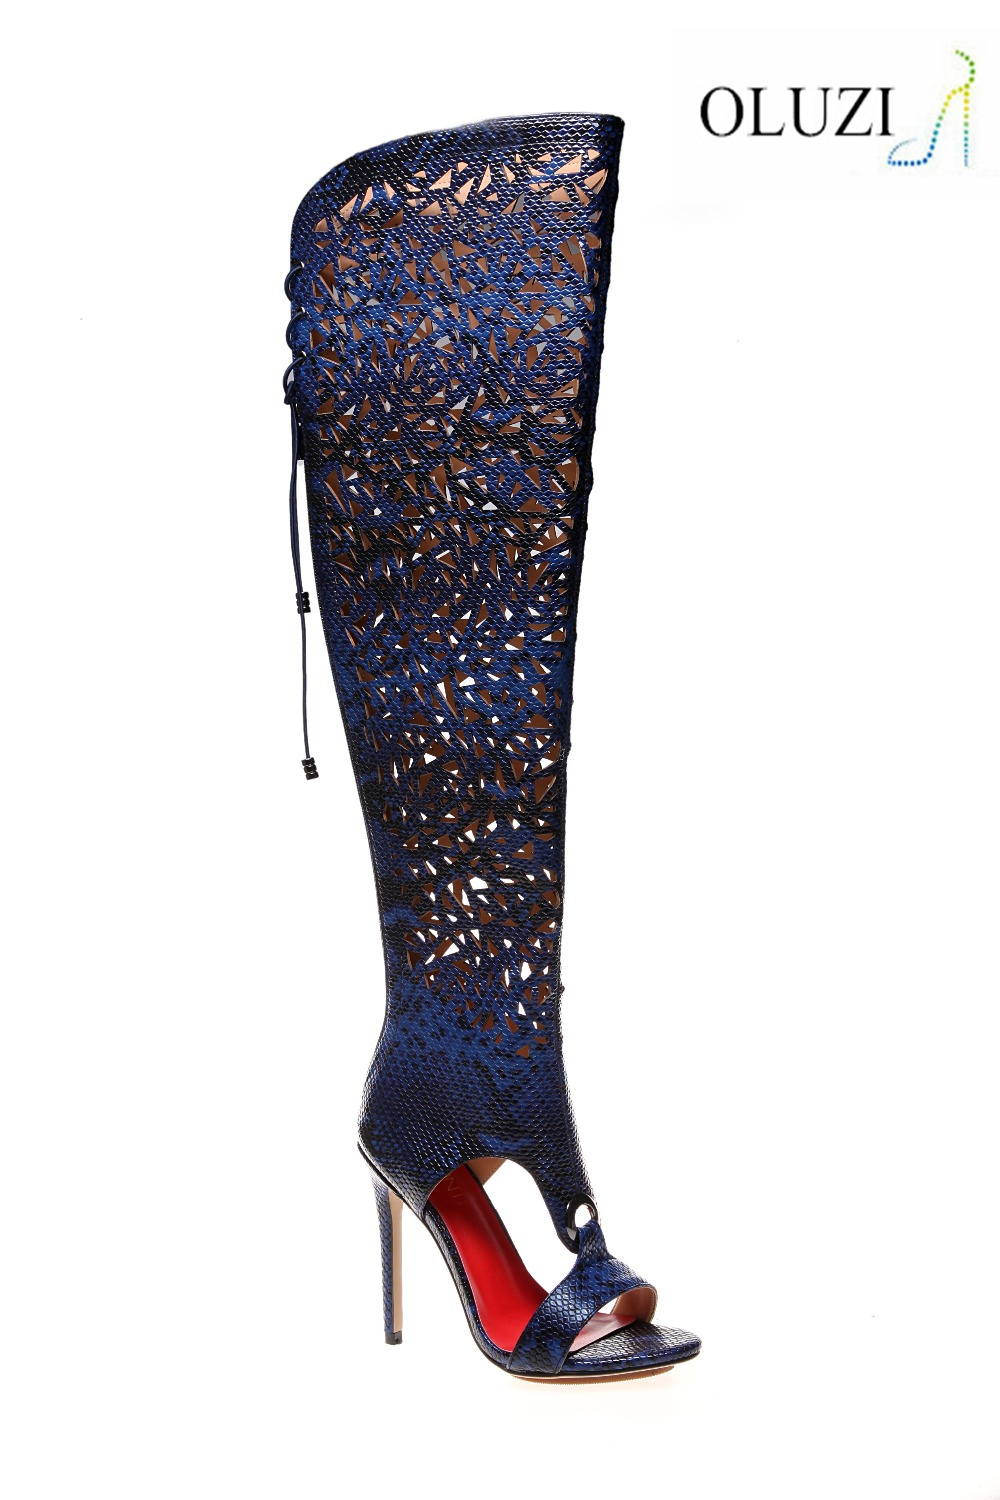 olz40 patent leather midsole thigh high cut out